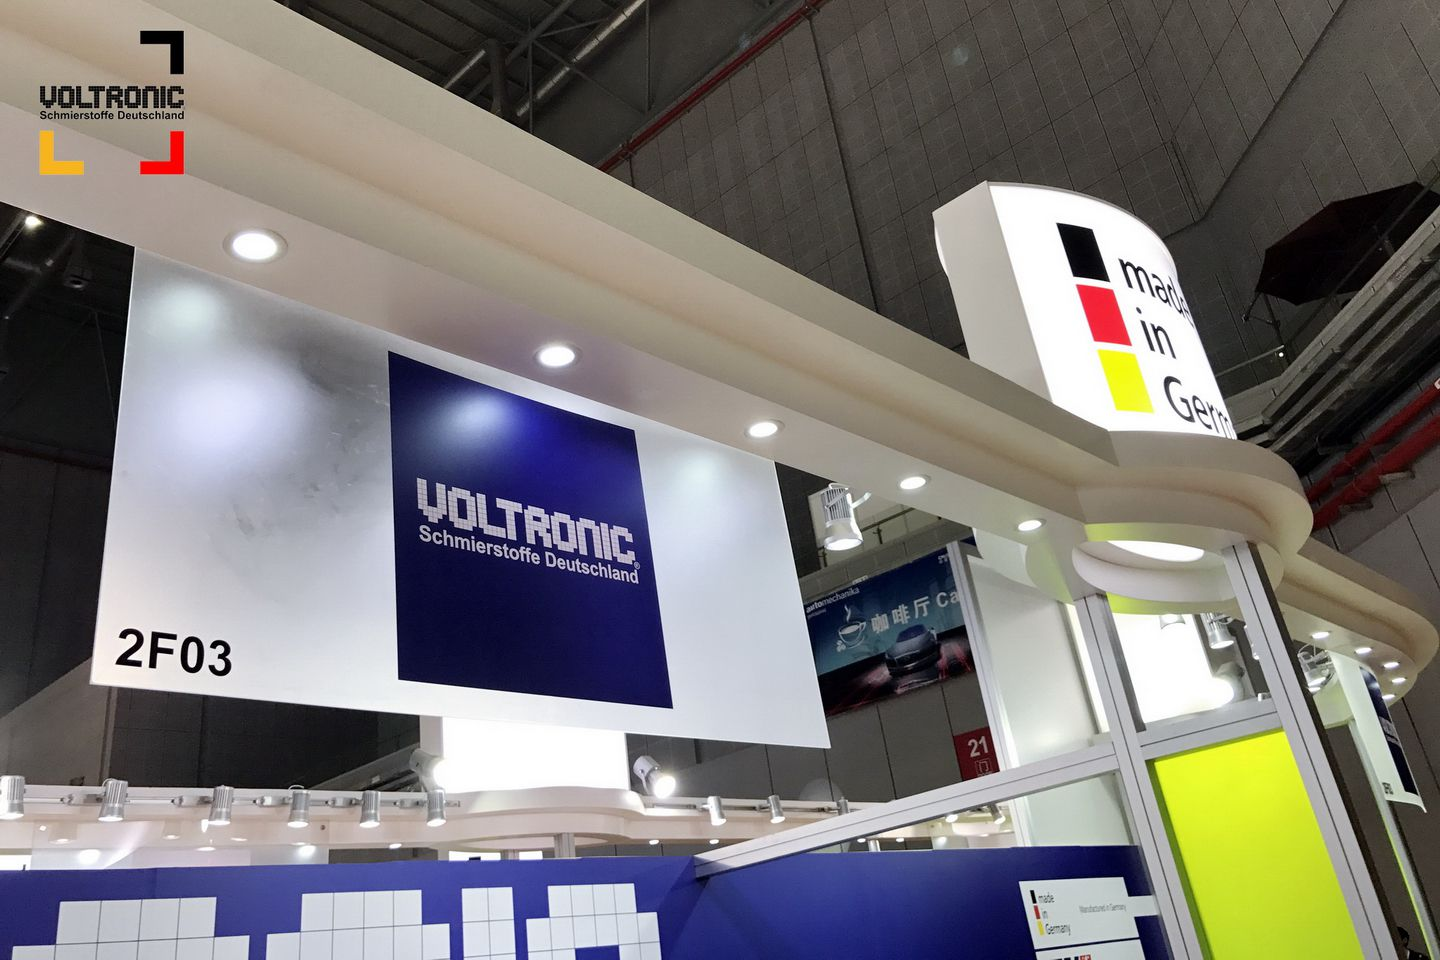 VOLTRONIC Germany debut at Automechanika Shanghai 2016